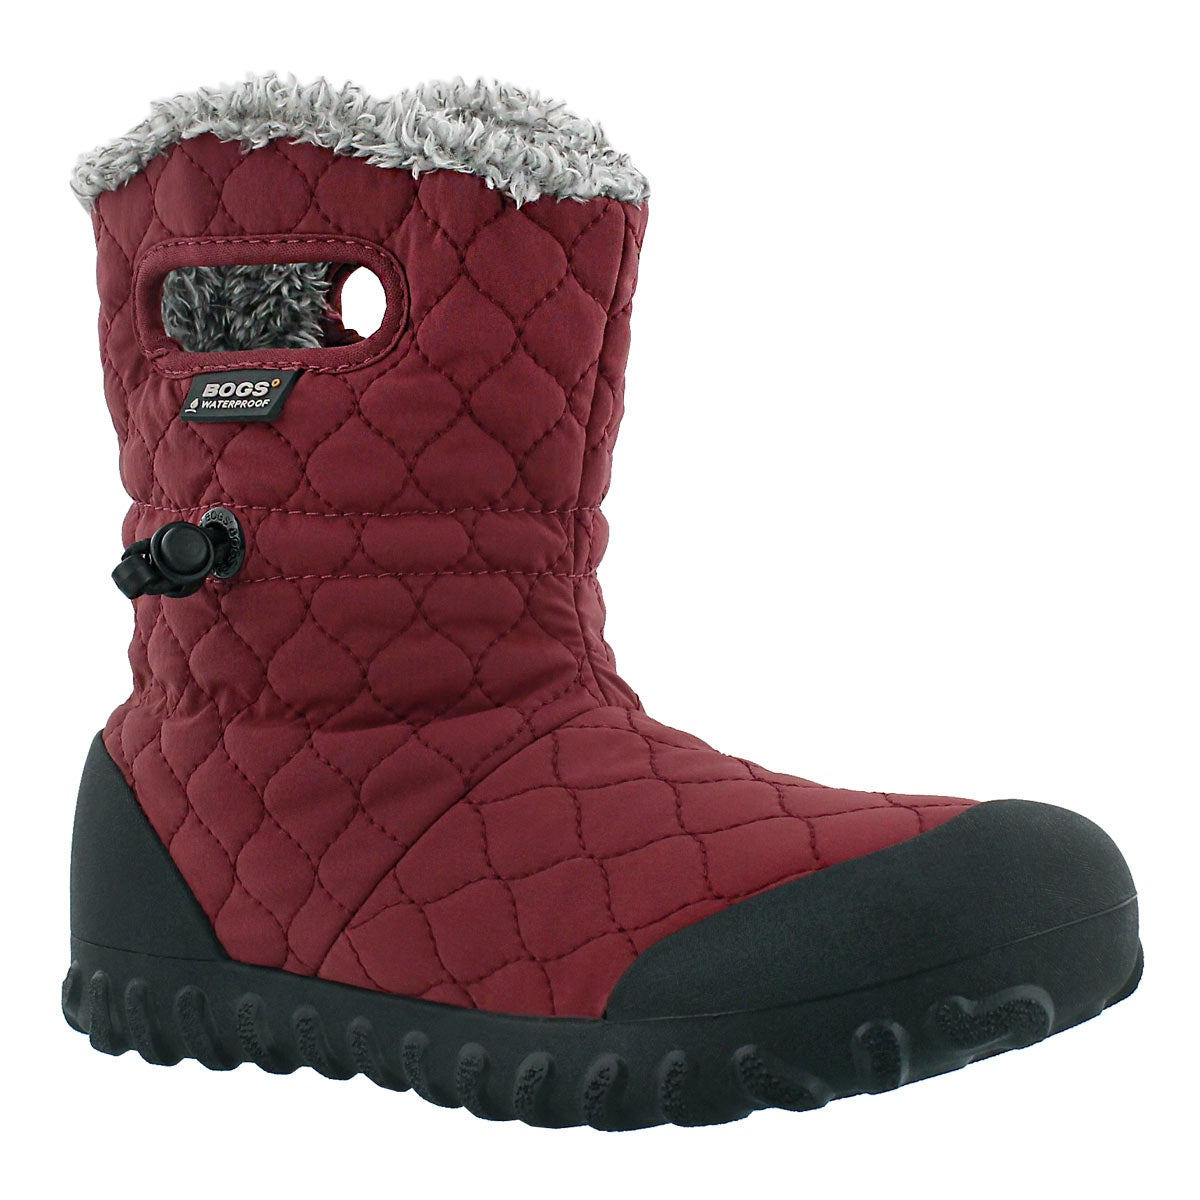 Women's B-MOC QUILTED PUFF burg waterproof boots